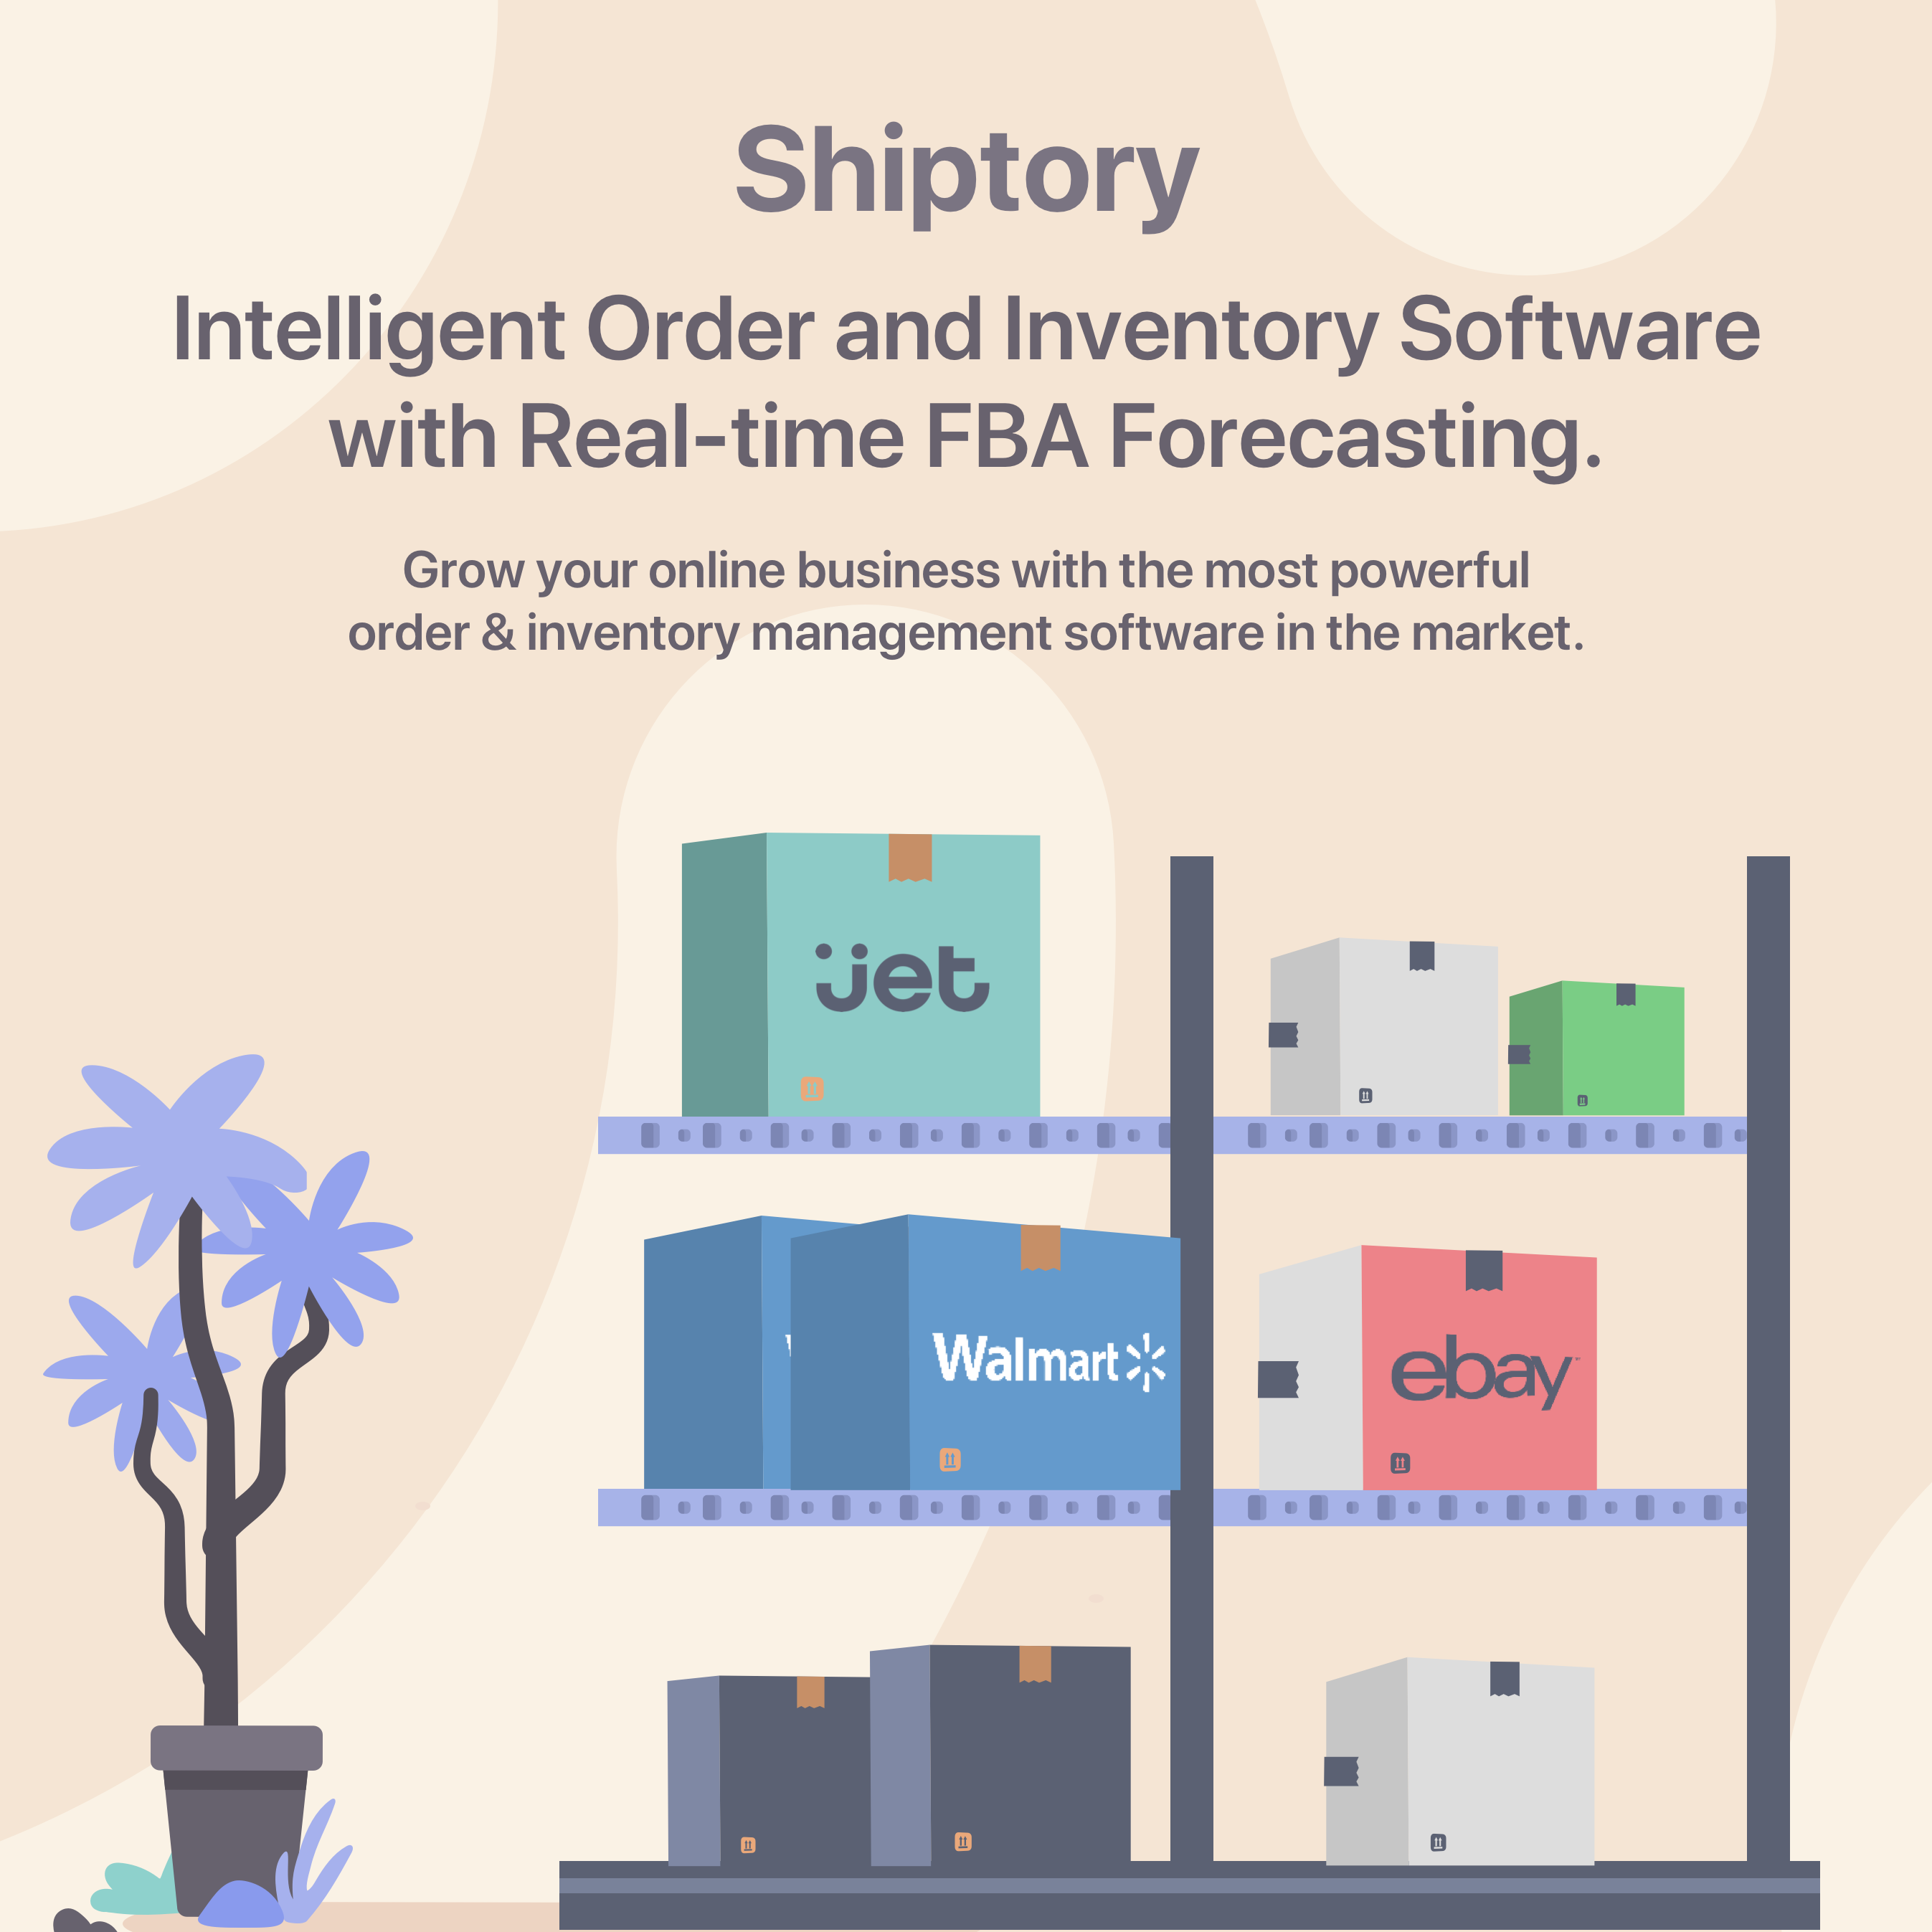 Intelligent Order and Inventory Software with Real-time FBA